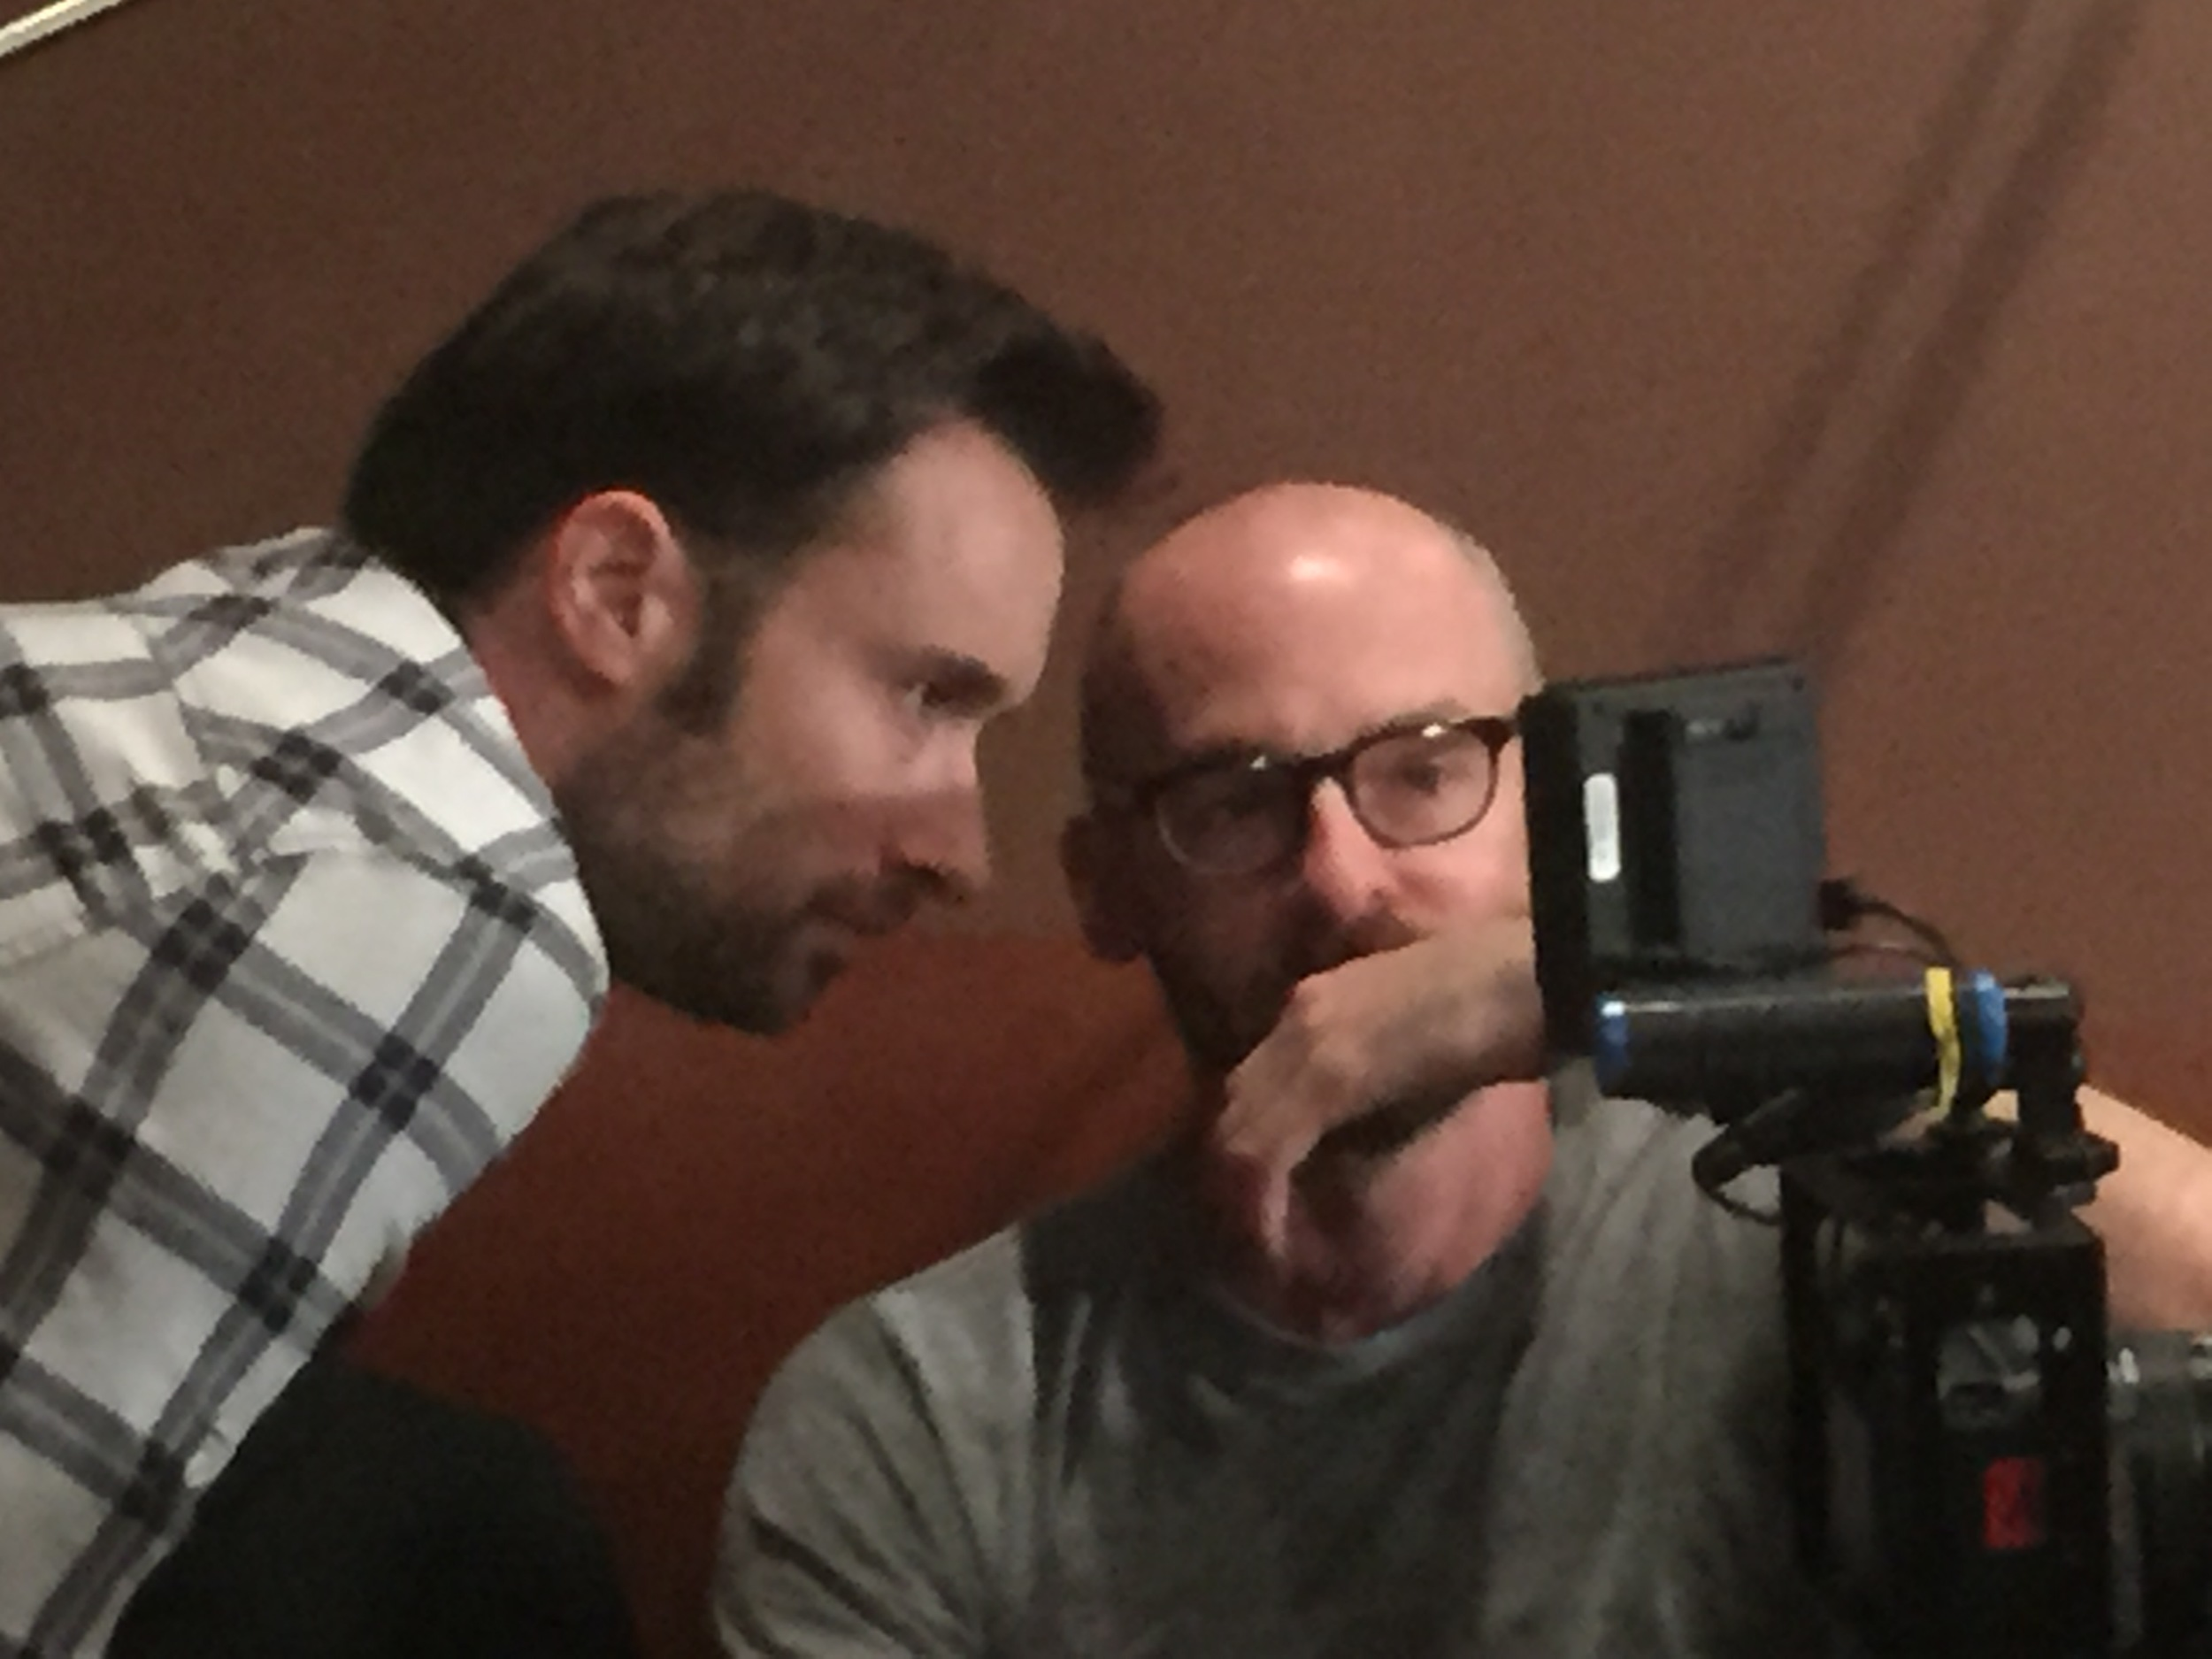 Director and Producer, Matt Mercer, reviews a scene with Cinematographer Patrick McGinley